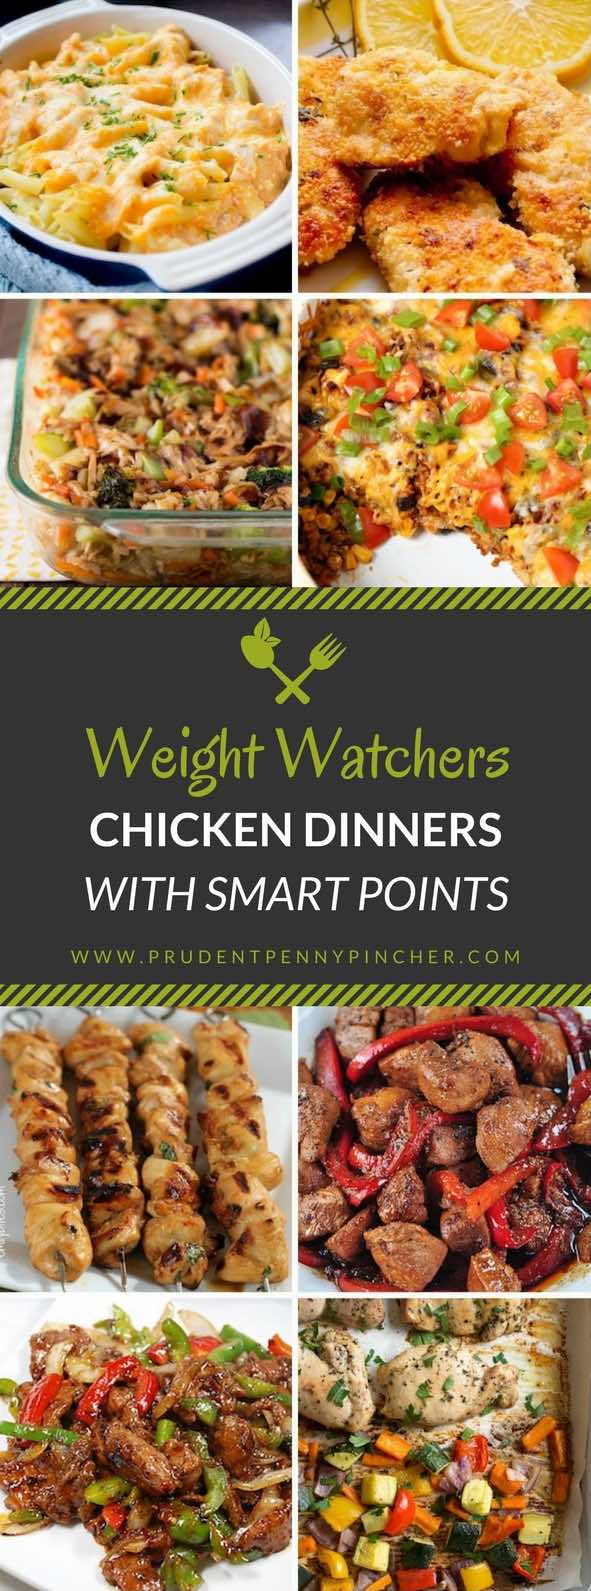 Weight Watcher Chicken Recipes With Smart Points